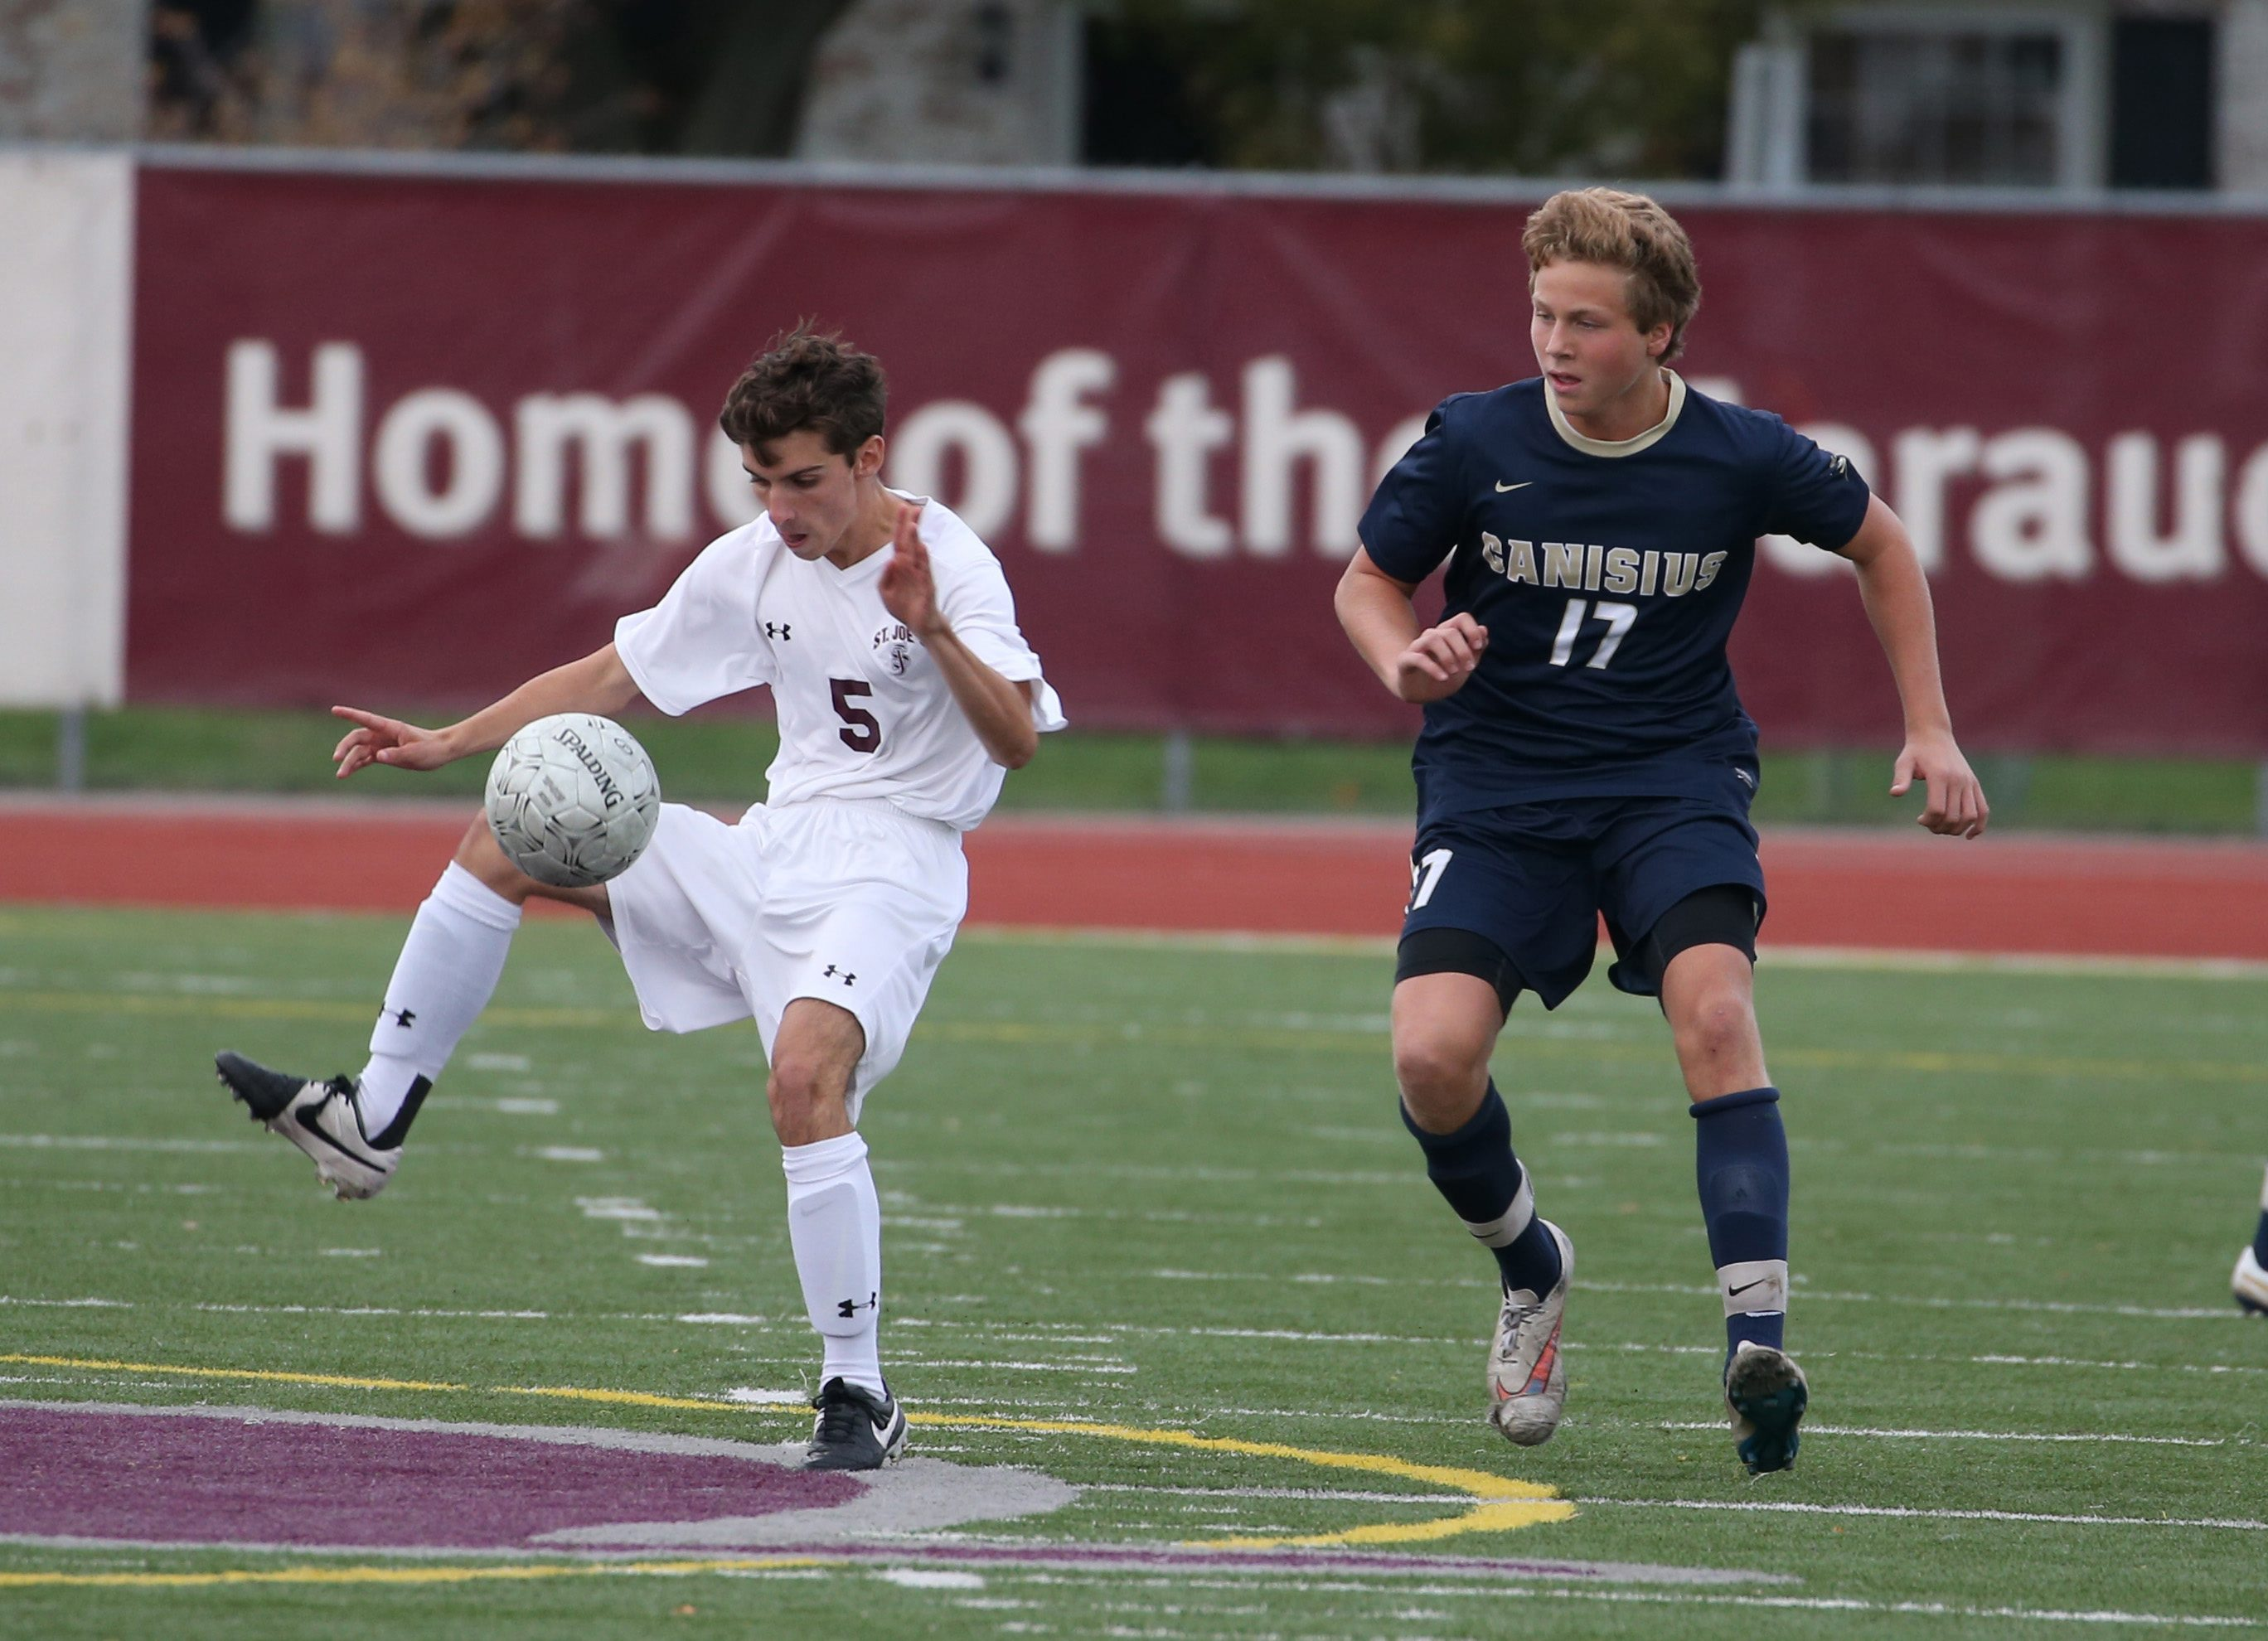 Benjamin Galkiewicz returns for St. Joe's, while Maxwell Montante is back for Canisius. (Sharon Cantillon/Buffalo News)